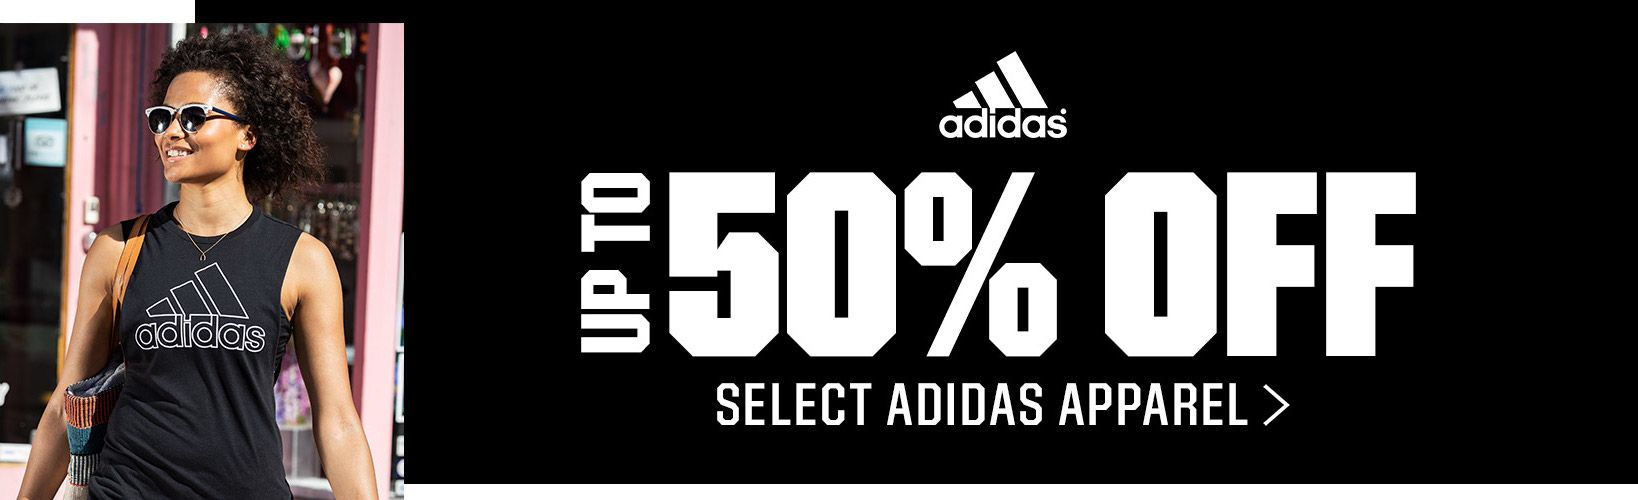 Up To 50% off Select Adidas Apparel